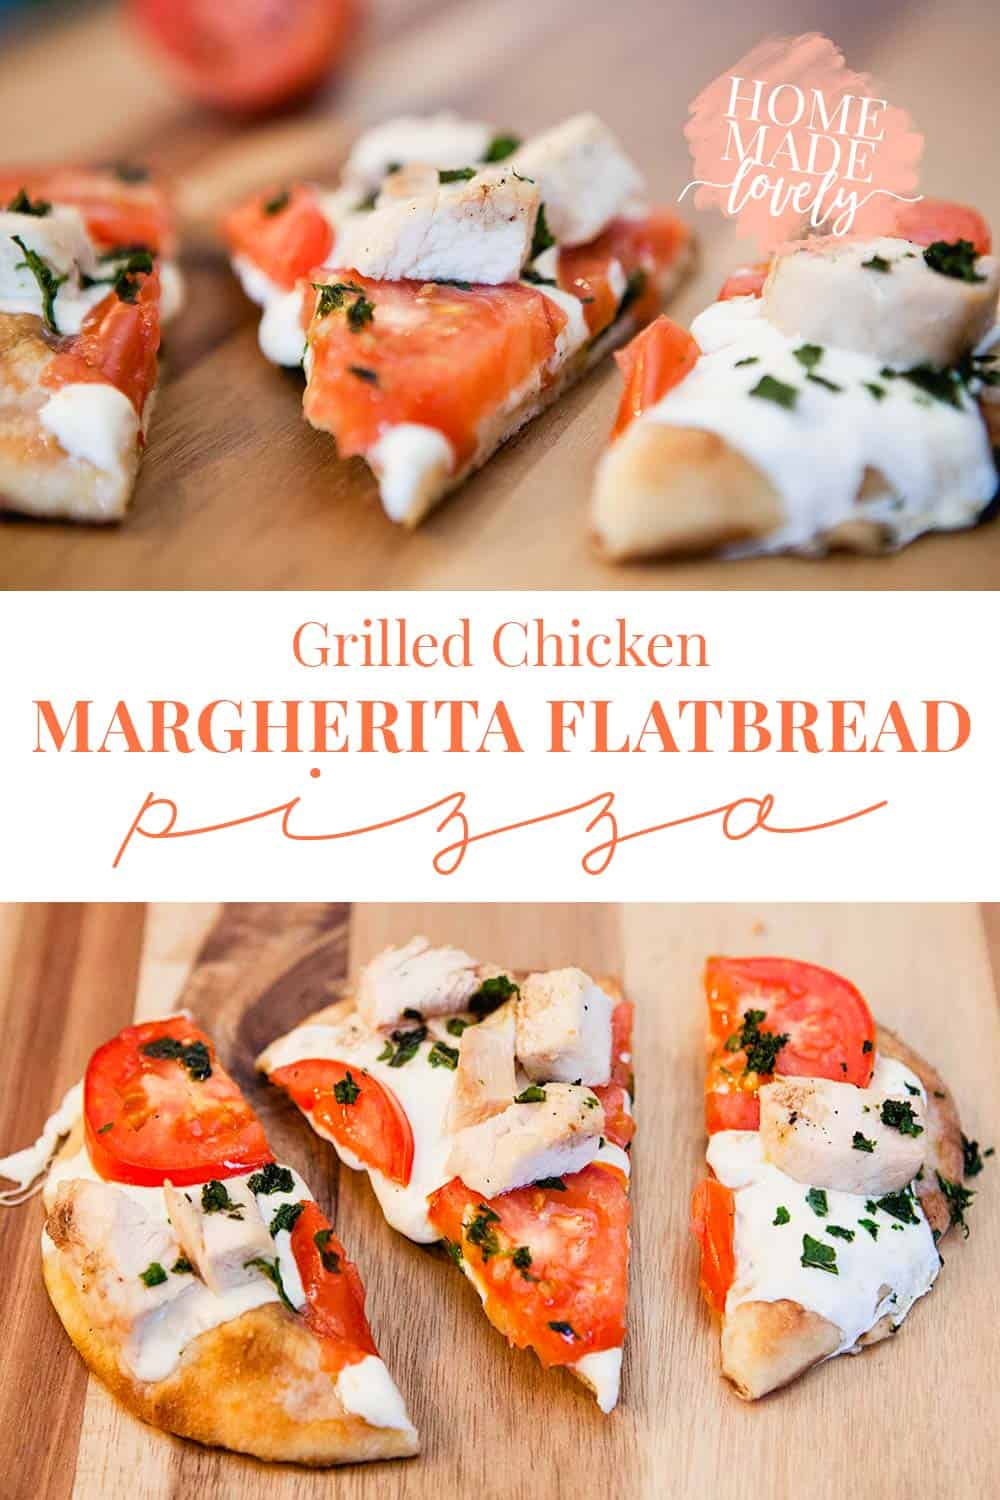 Forget the delivery! This Grilled Chicken Margherita Flatbread Pizza makes the perfect weekday lunch or even date night dinner!